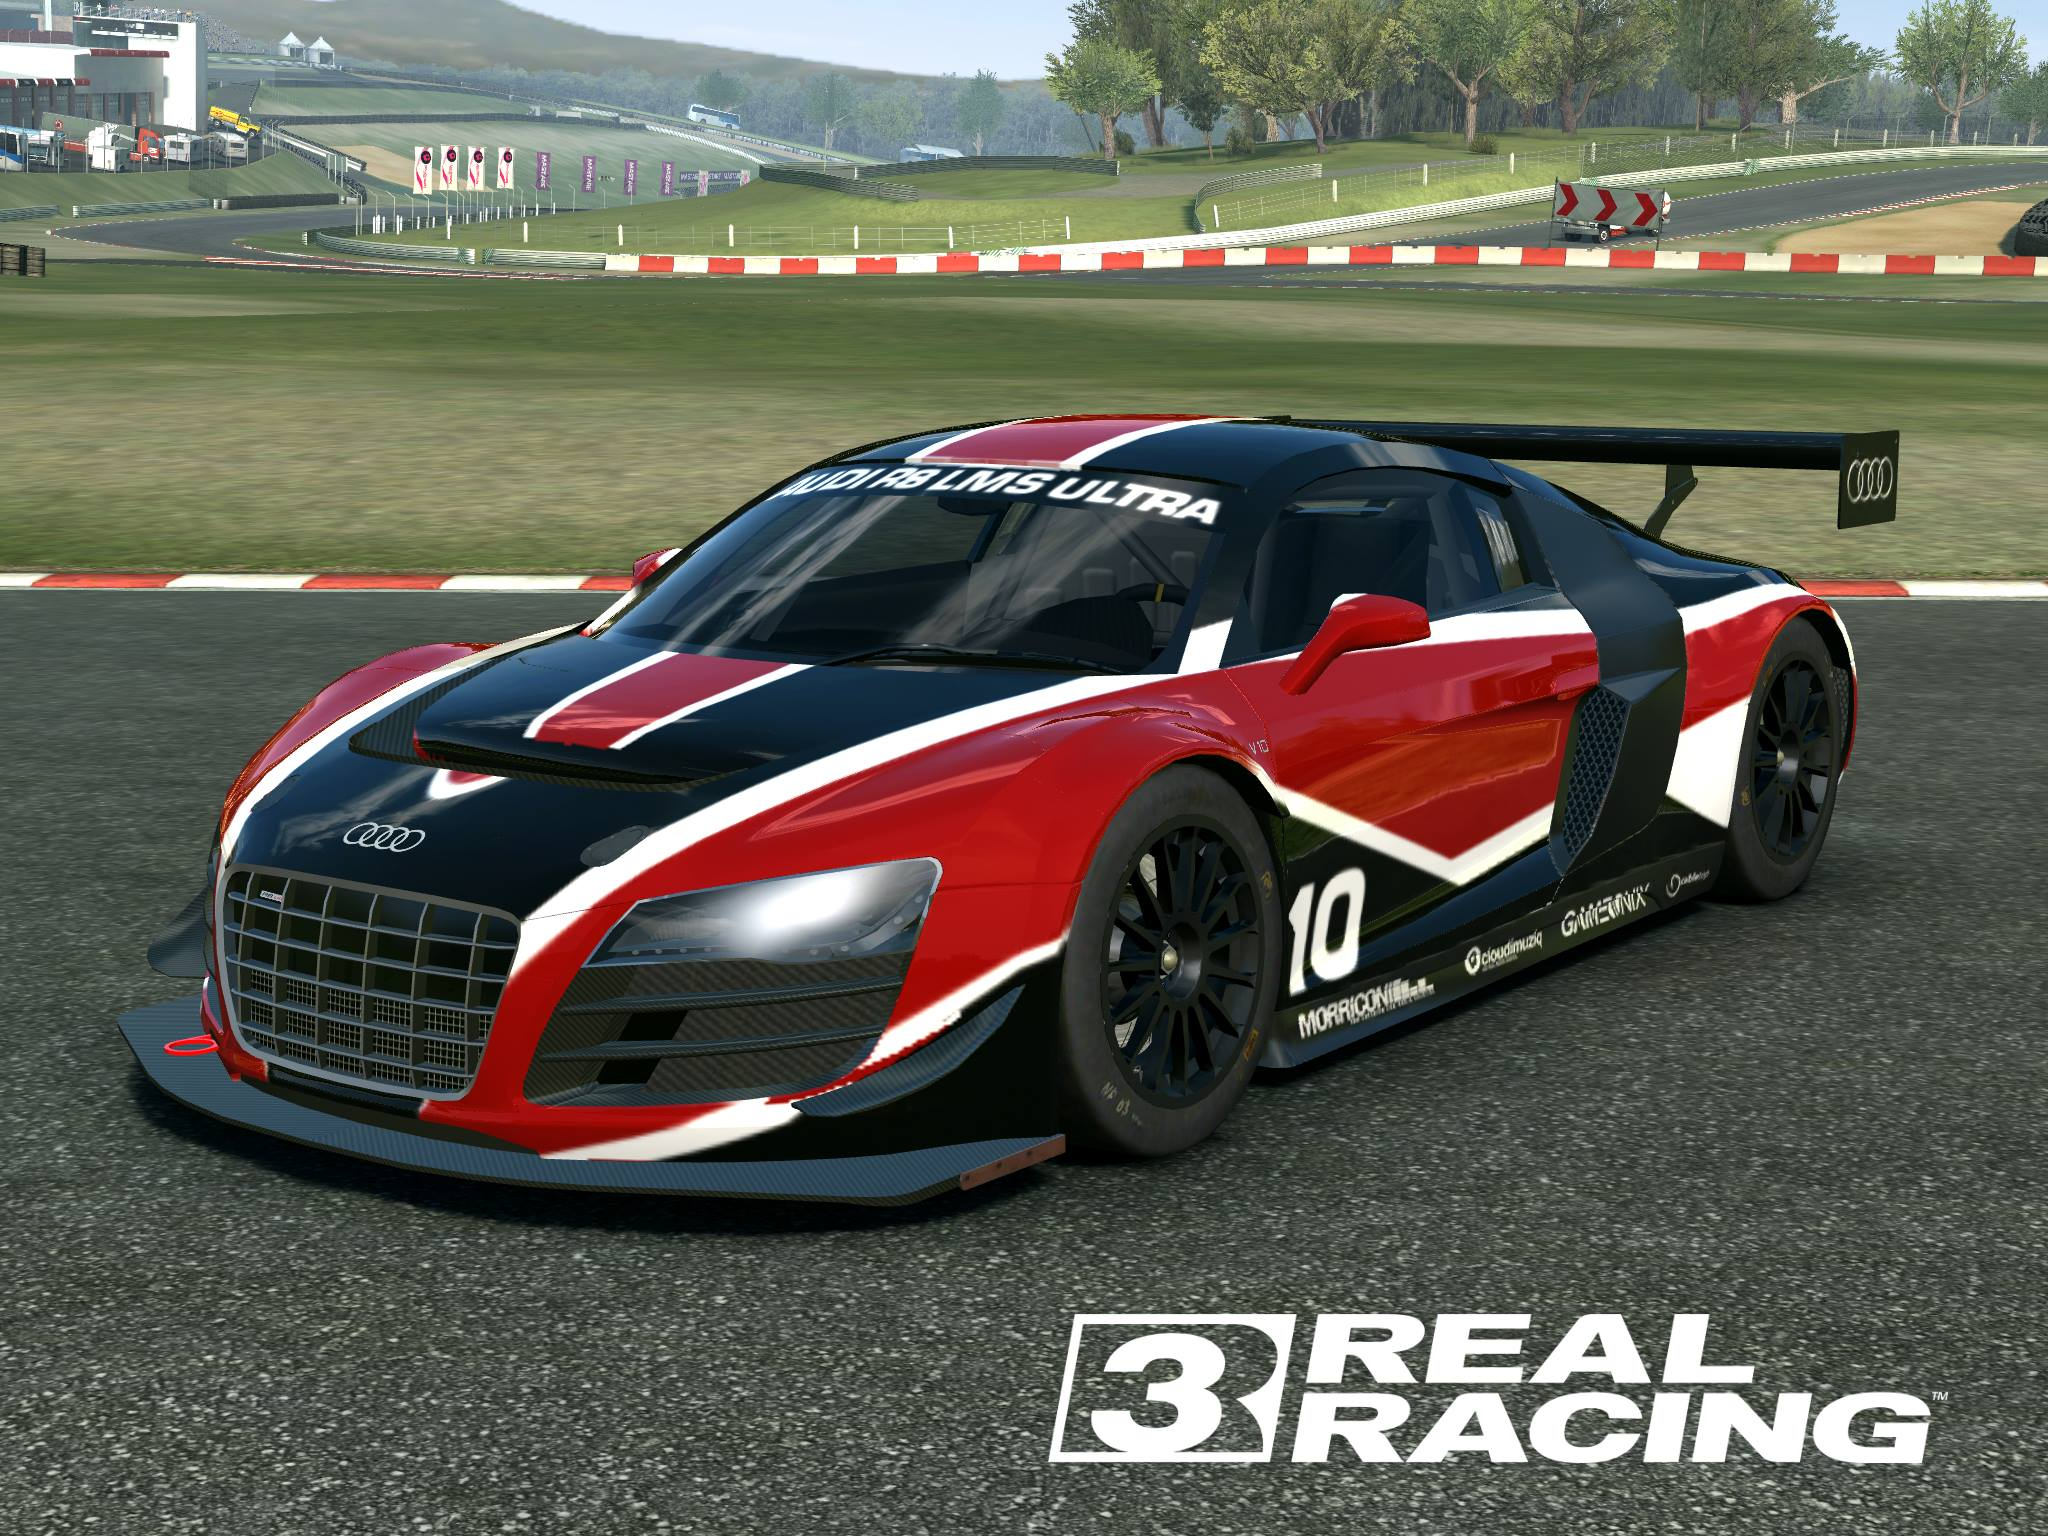 Audi 10 r8 lms ultra real racing 3 by silent valiance